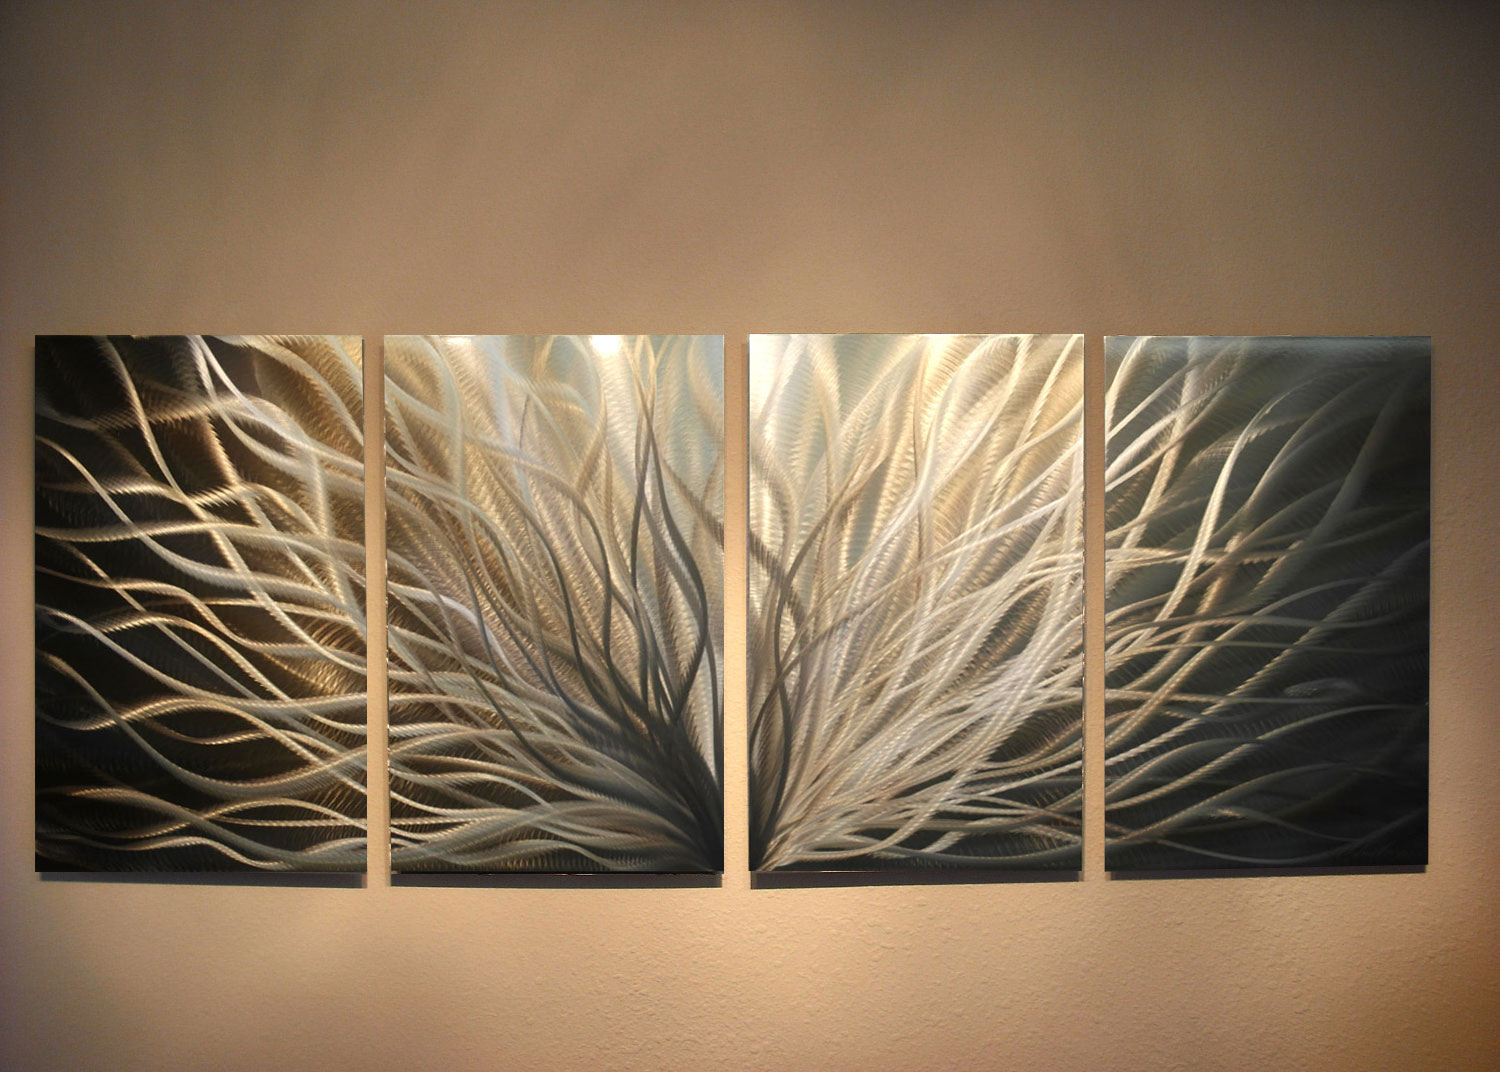 Abstract Metal Wall Art- Radiance Gold Silver ...